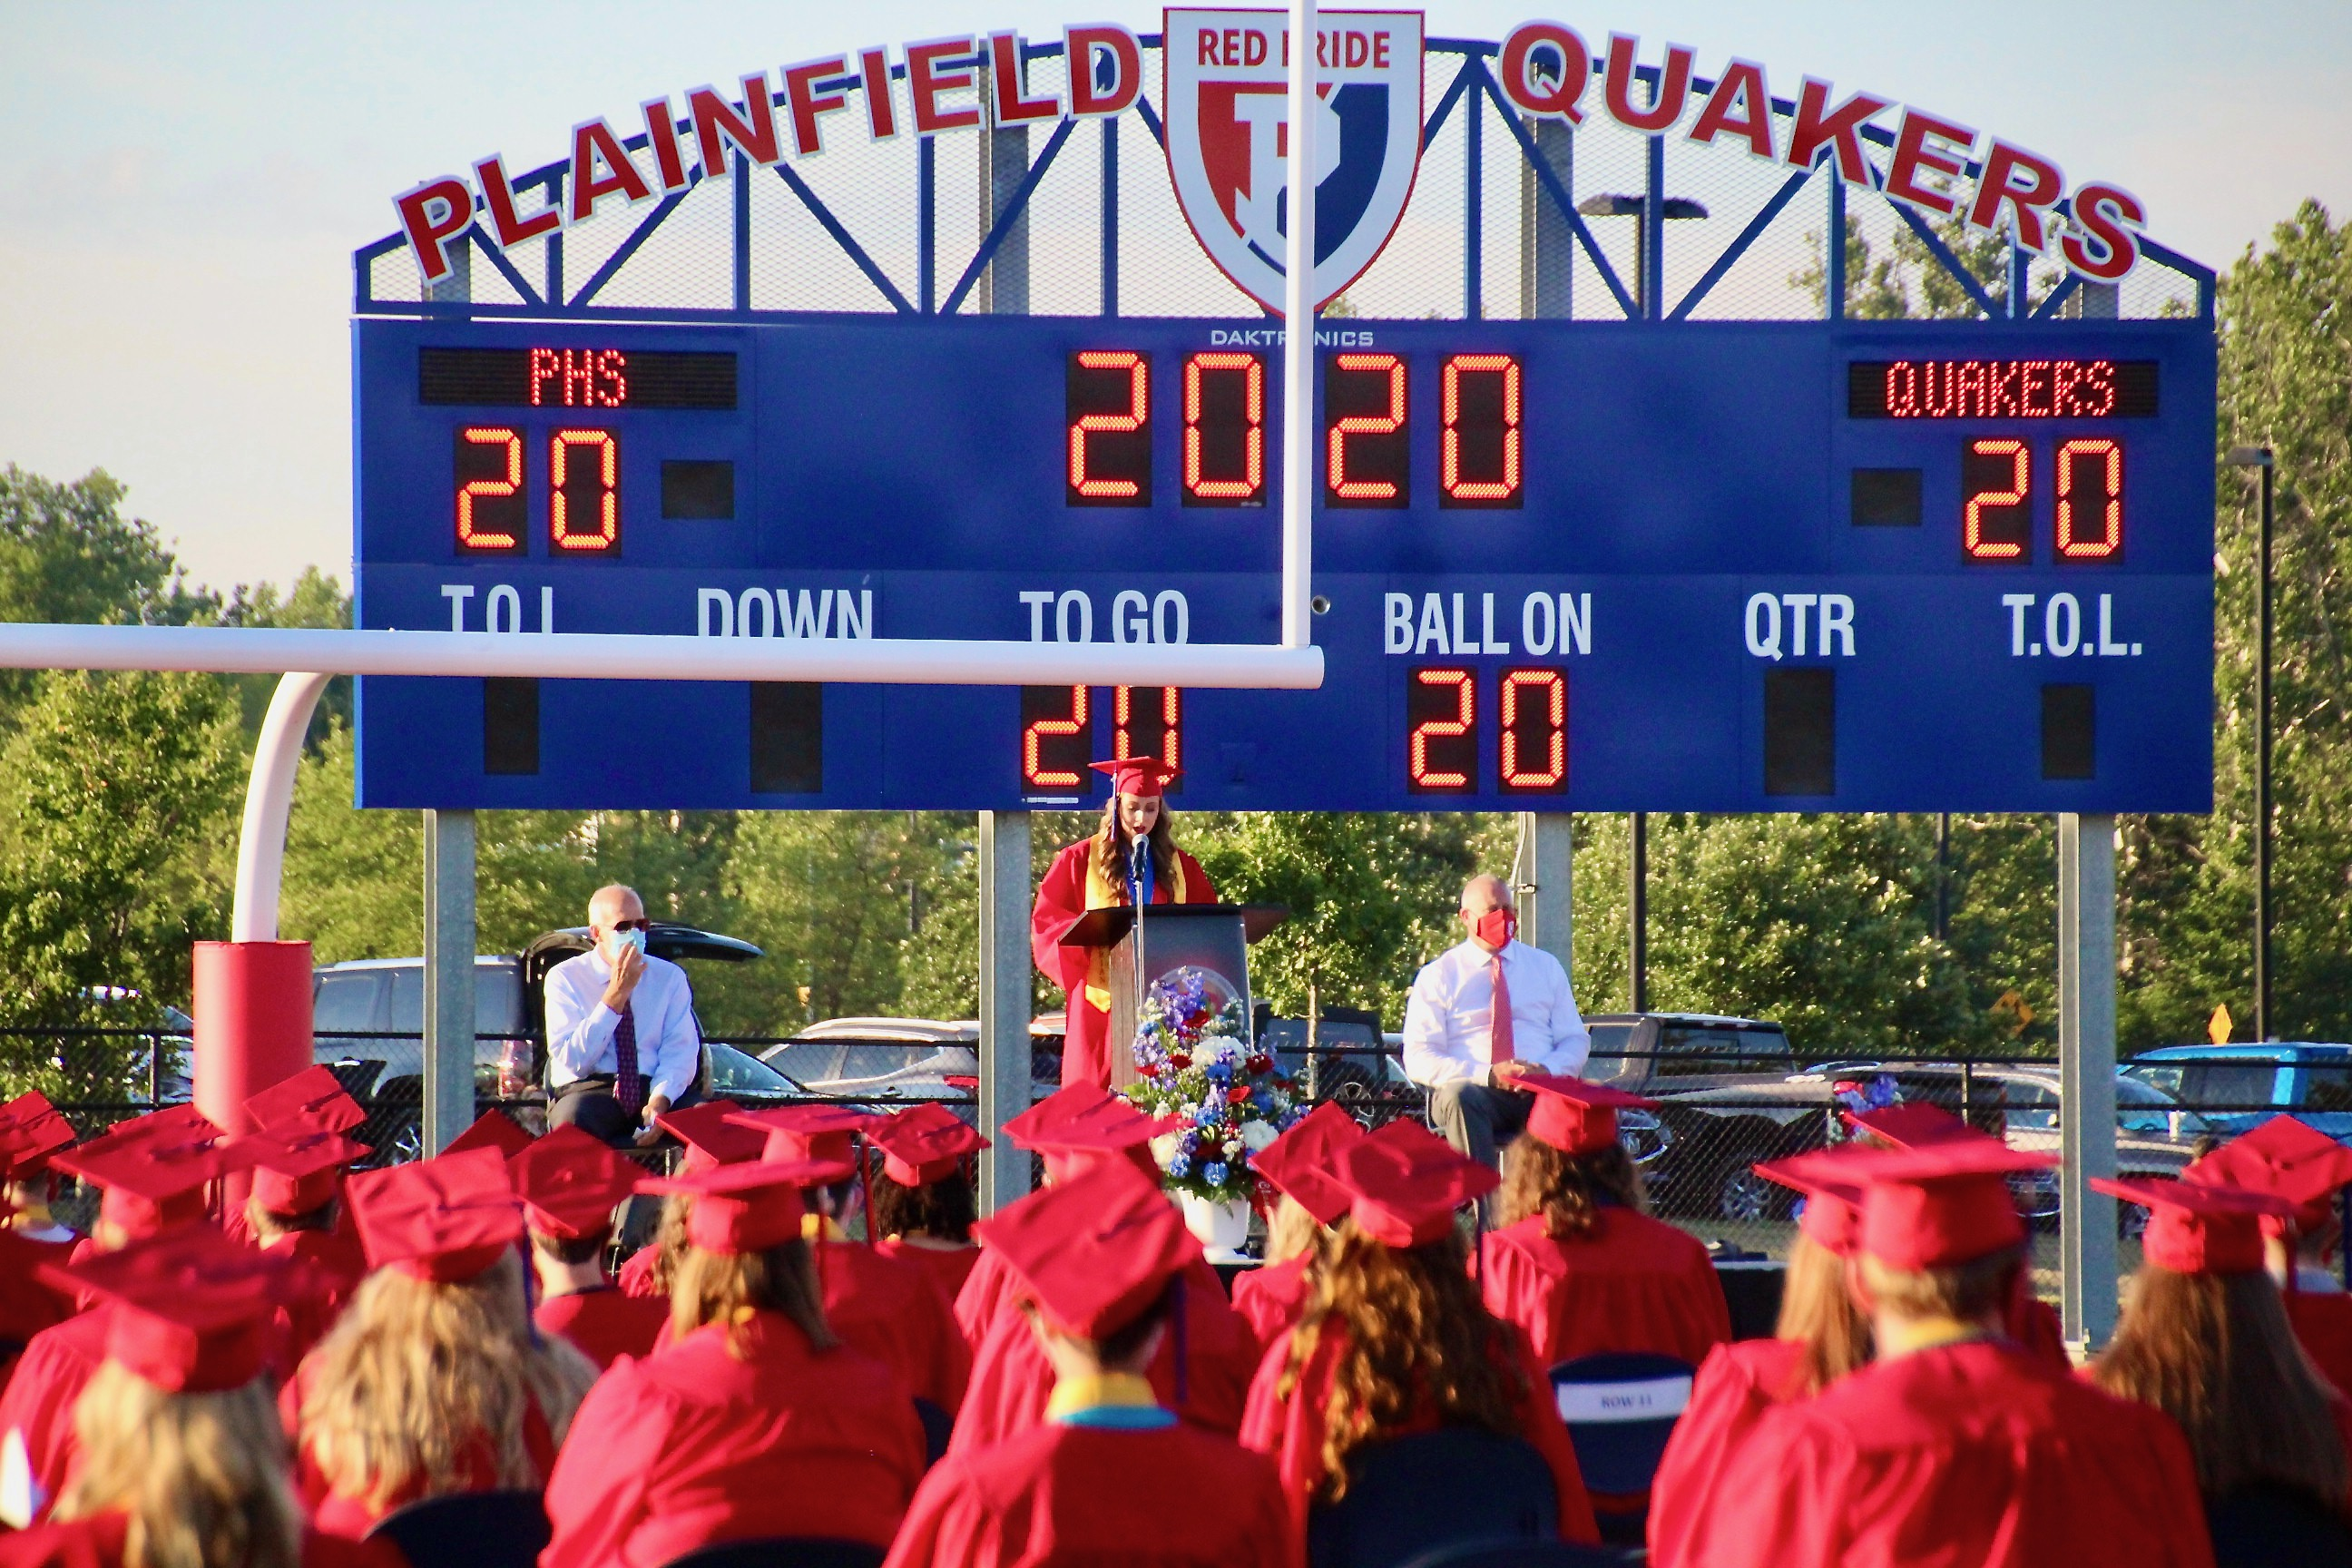 With a commitment to the Class of '20, Commencement was held, in July, on the football field. It was a beautiful celebration of an outstanding group of new graduates.